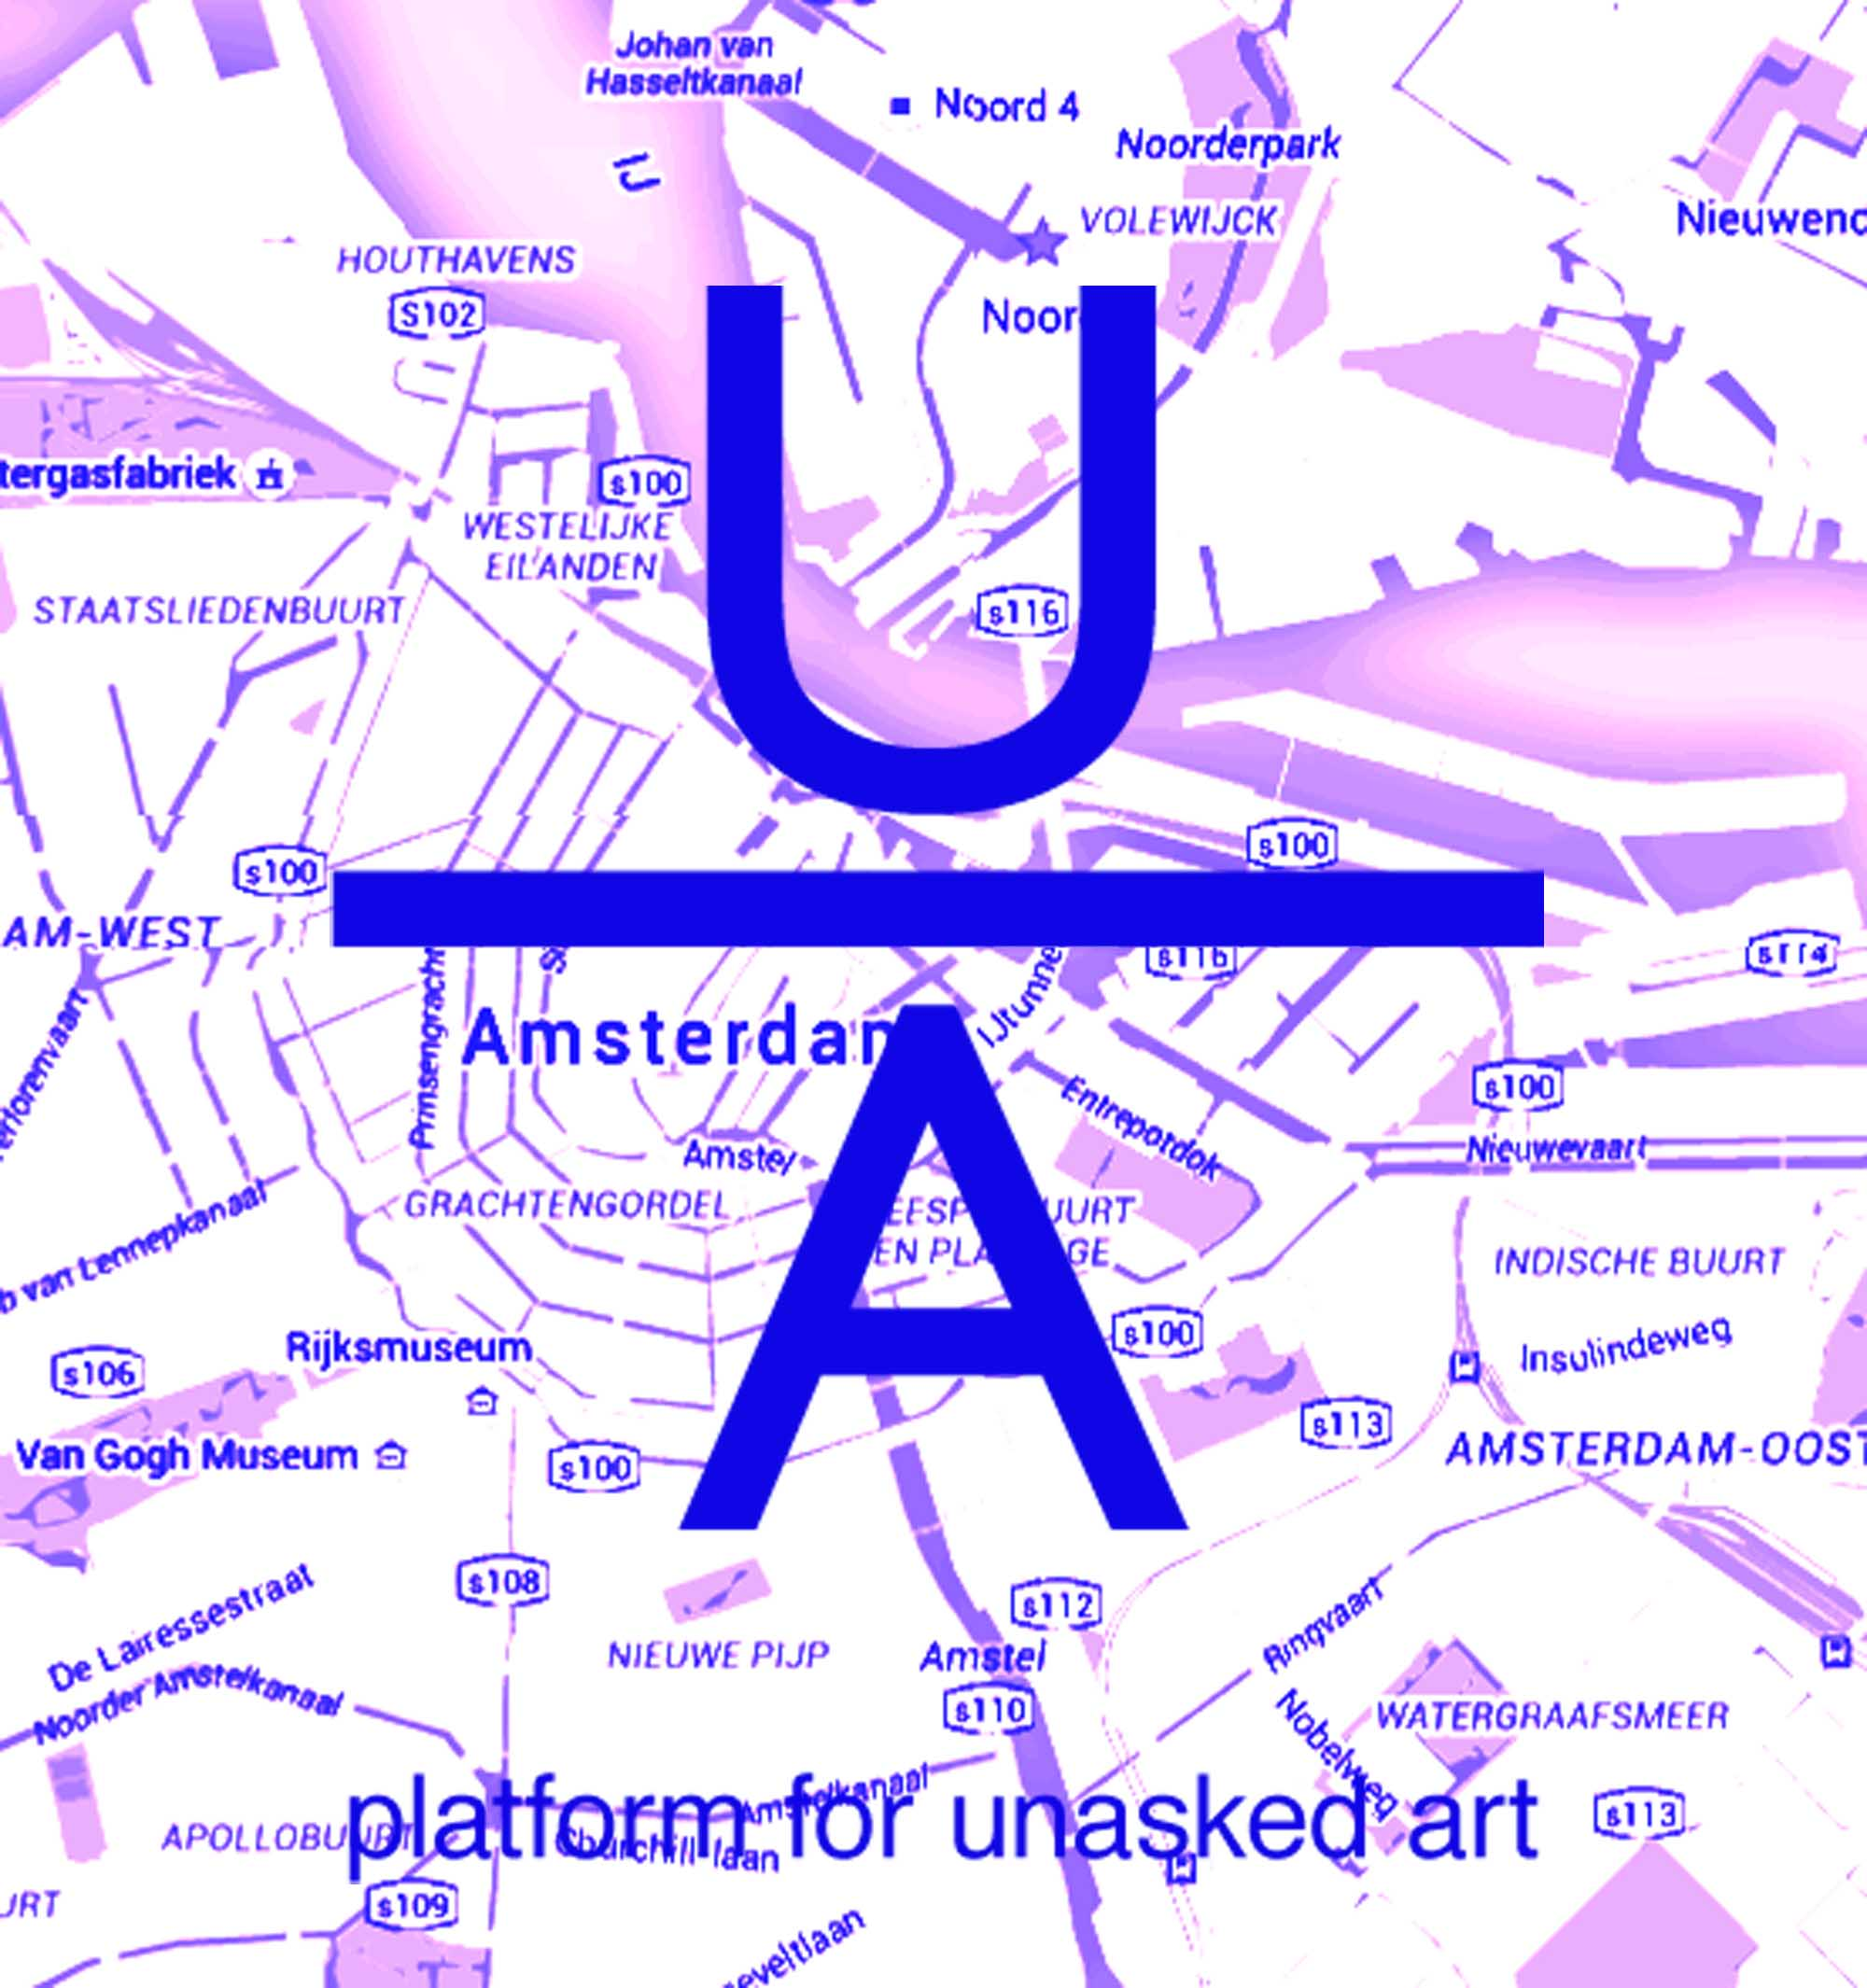 Platform for Unasked Art